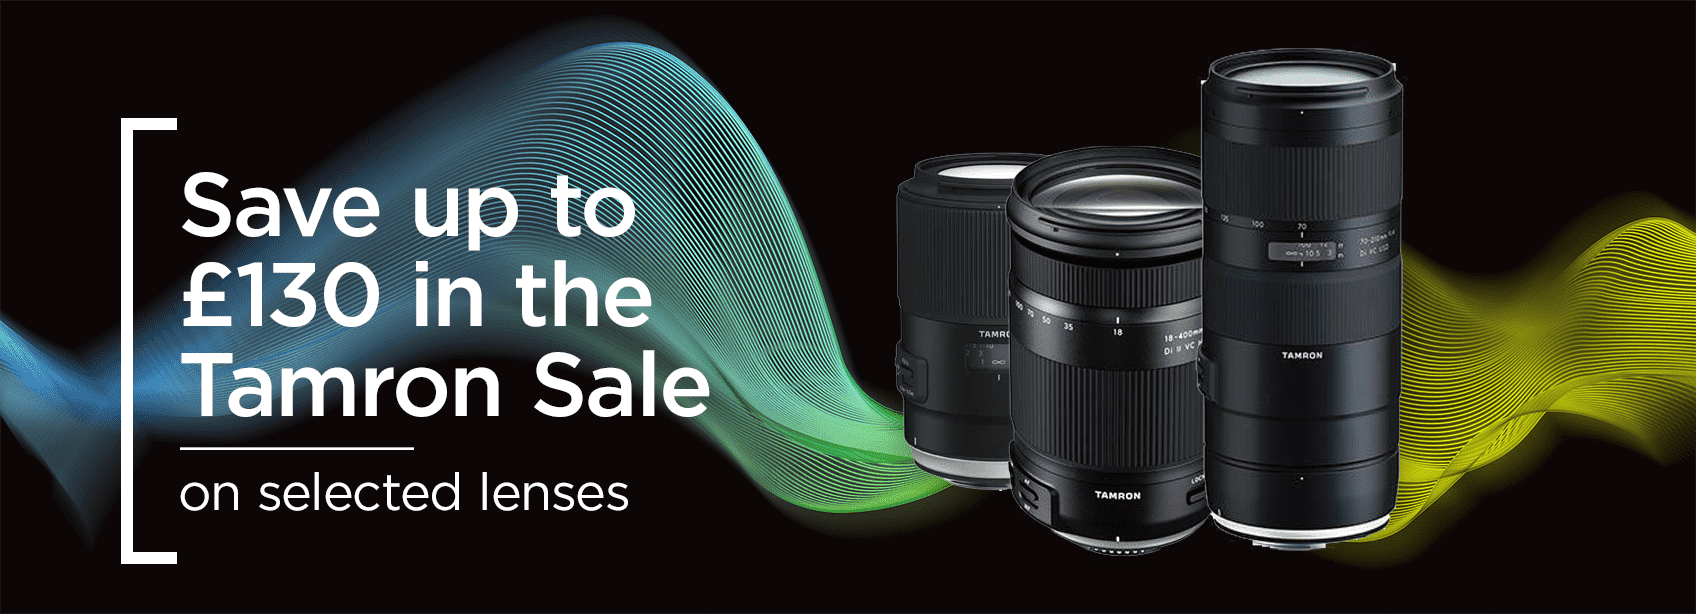 Tamron Sale, save up to £130